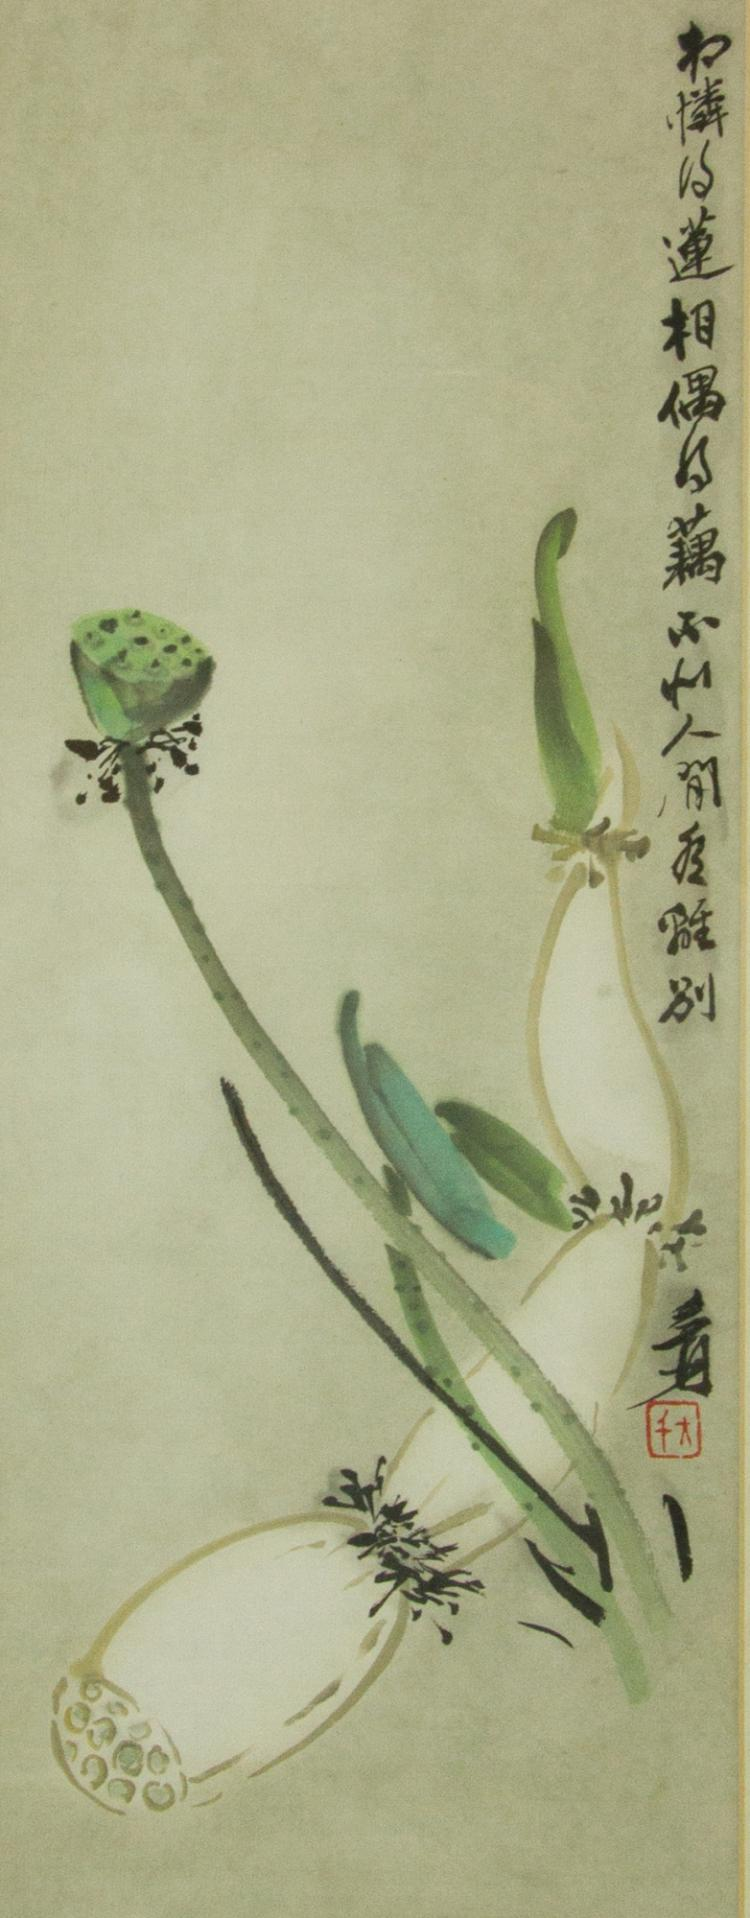 Zhang Daqian 1899-1983 Watercolour on Paper